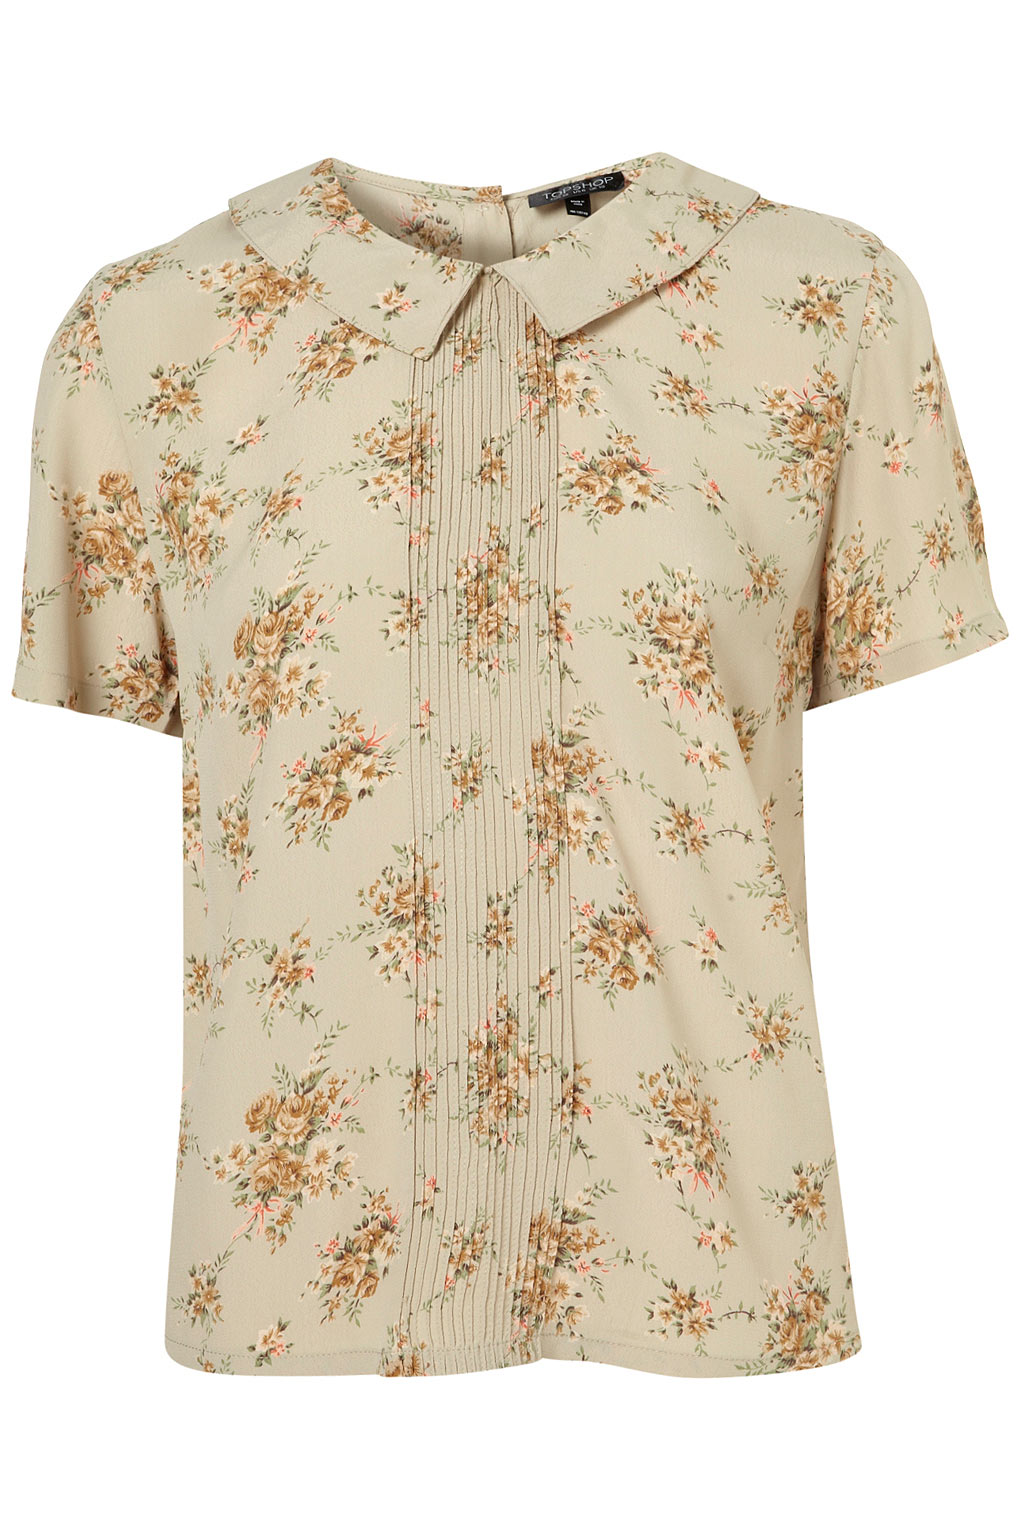 3c6f23377377f7 TOPSHOP Floral Pintuck Collar Blouse in Natural - Lyst